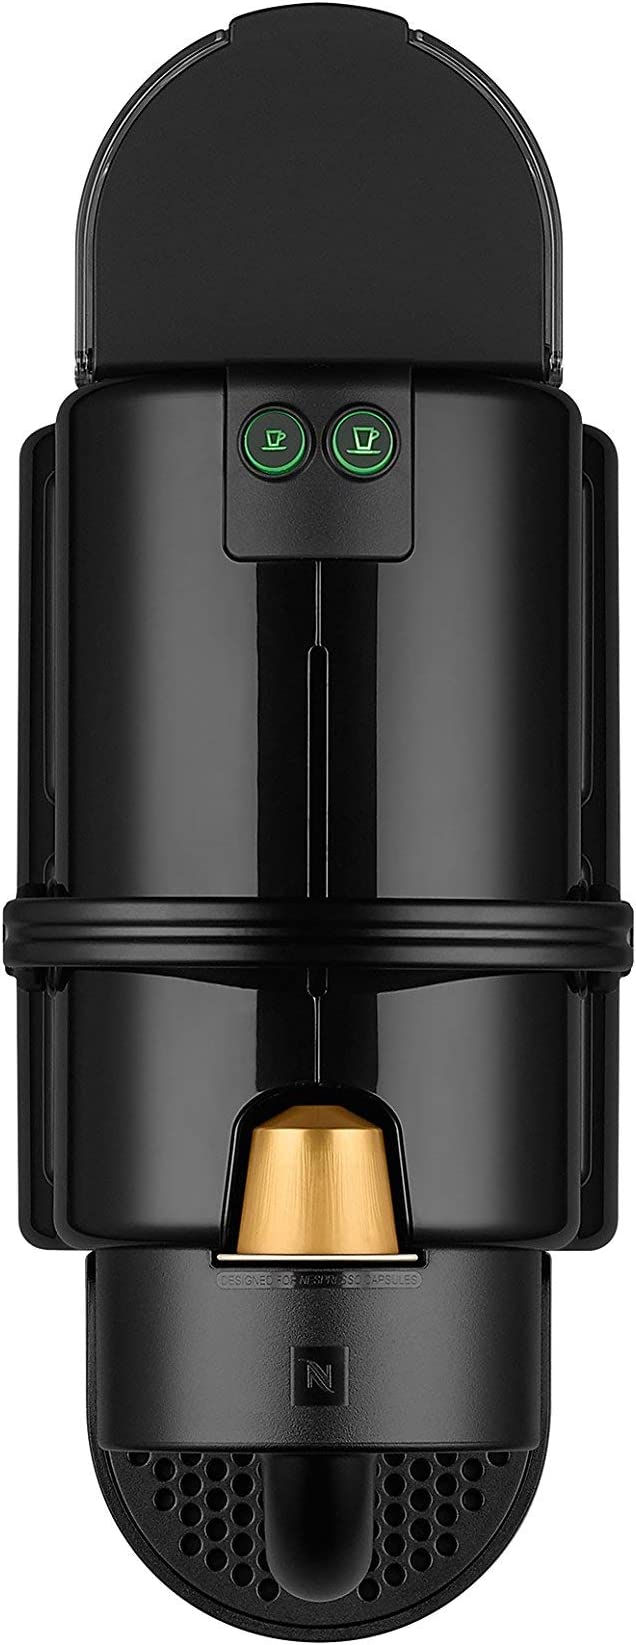 Amazon.com: Delonghi - Cafetera Inissia Nespresso, color ...